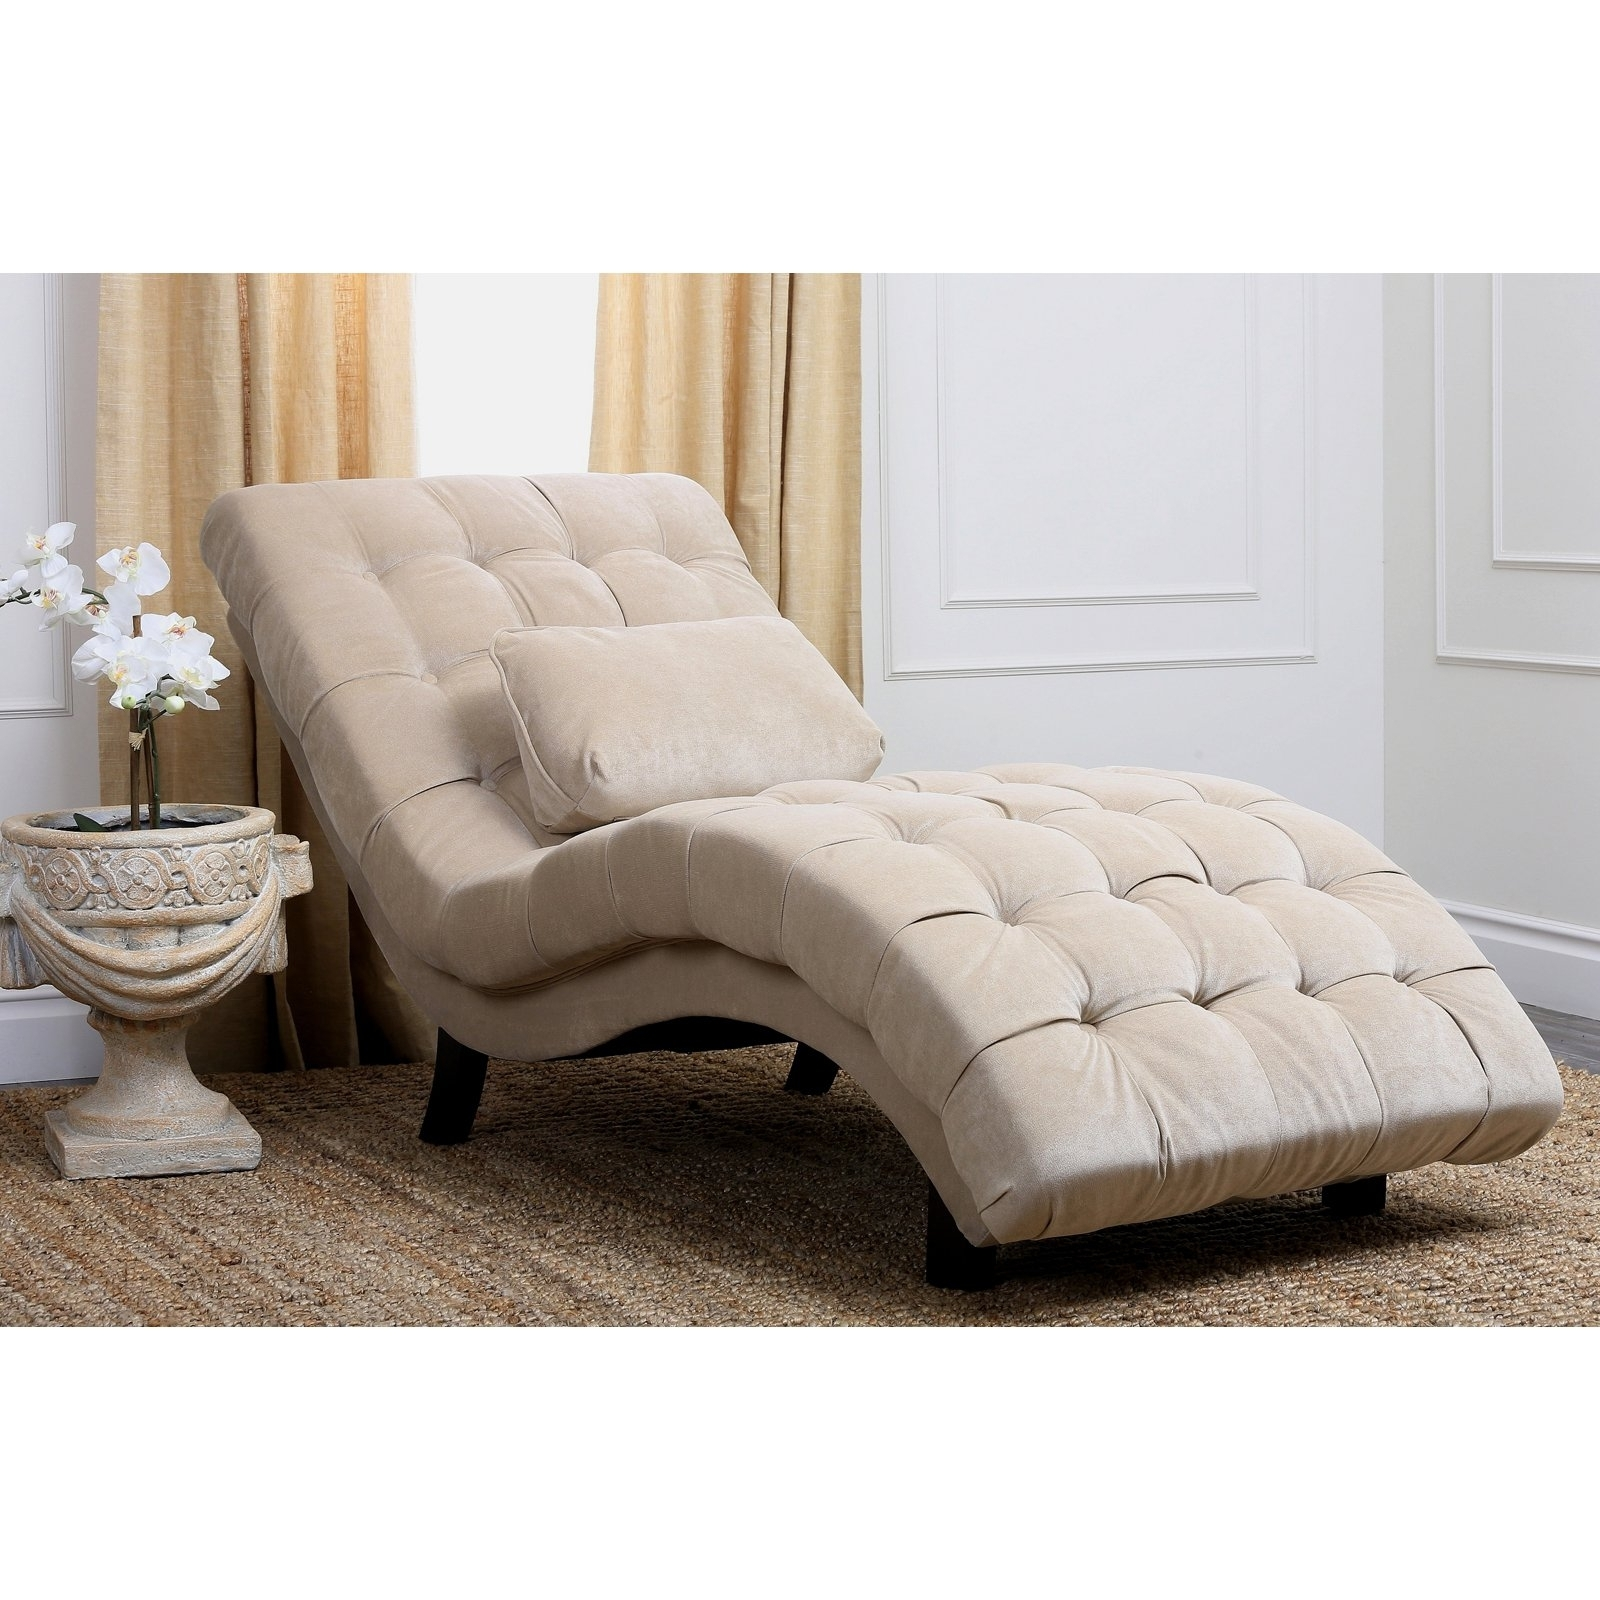 Fashionable Comfortable Chaise Lounge Chairs • Lounge Chairs Ideas With Regard To Comfortable Chaise Lounges (View 11 of 15)